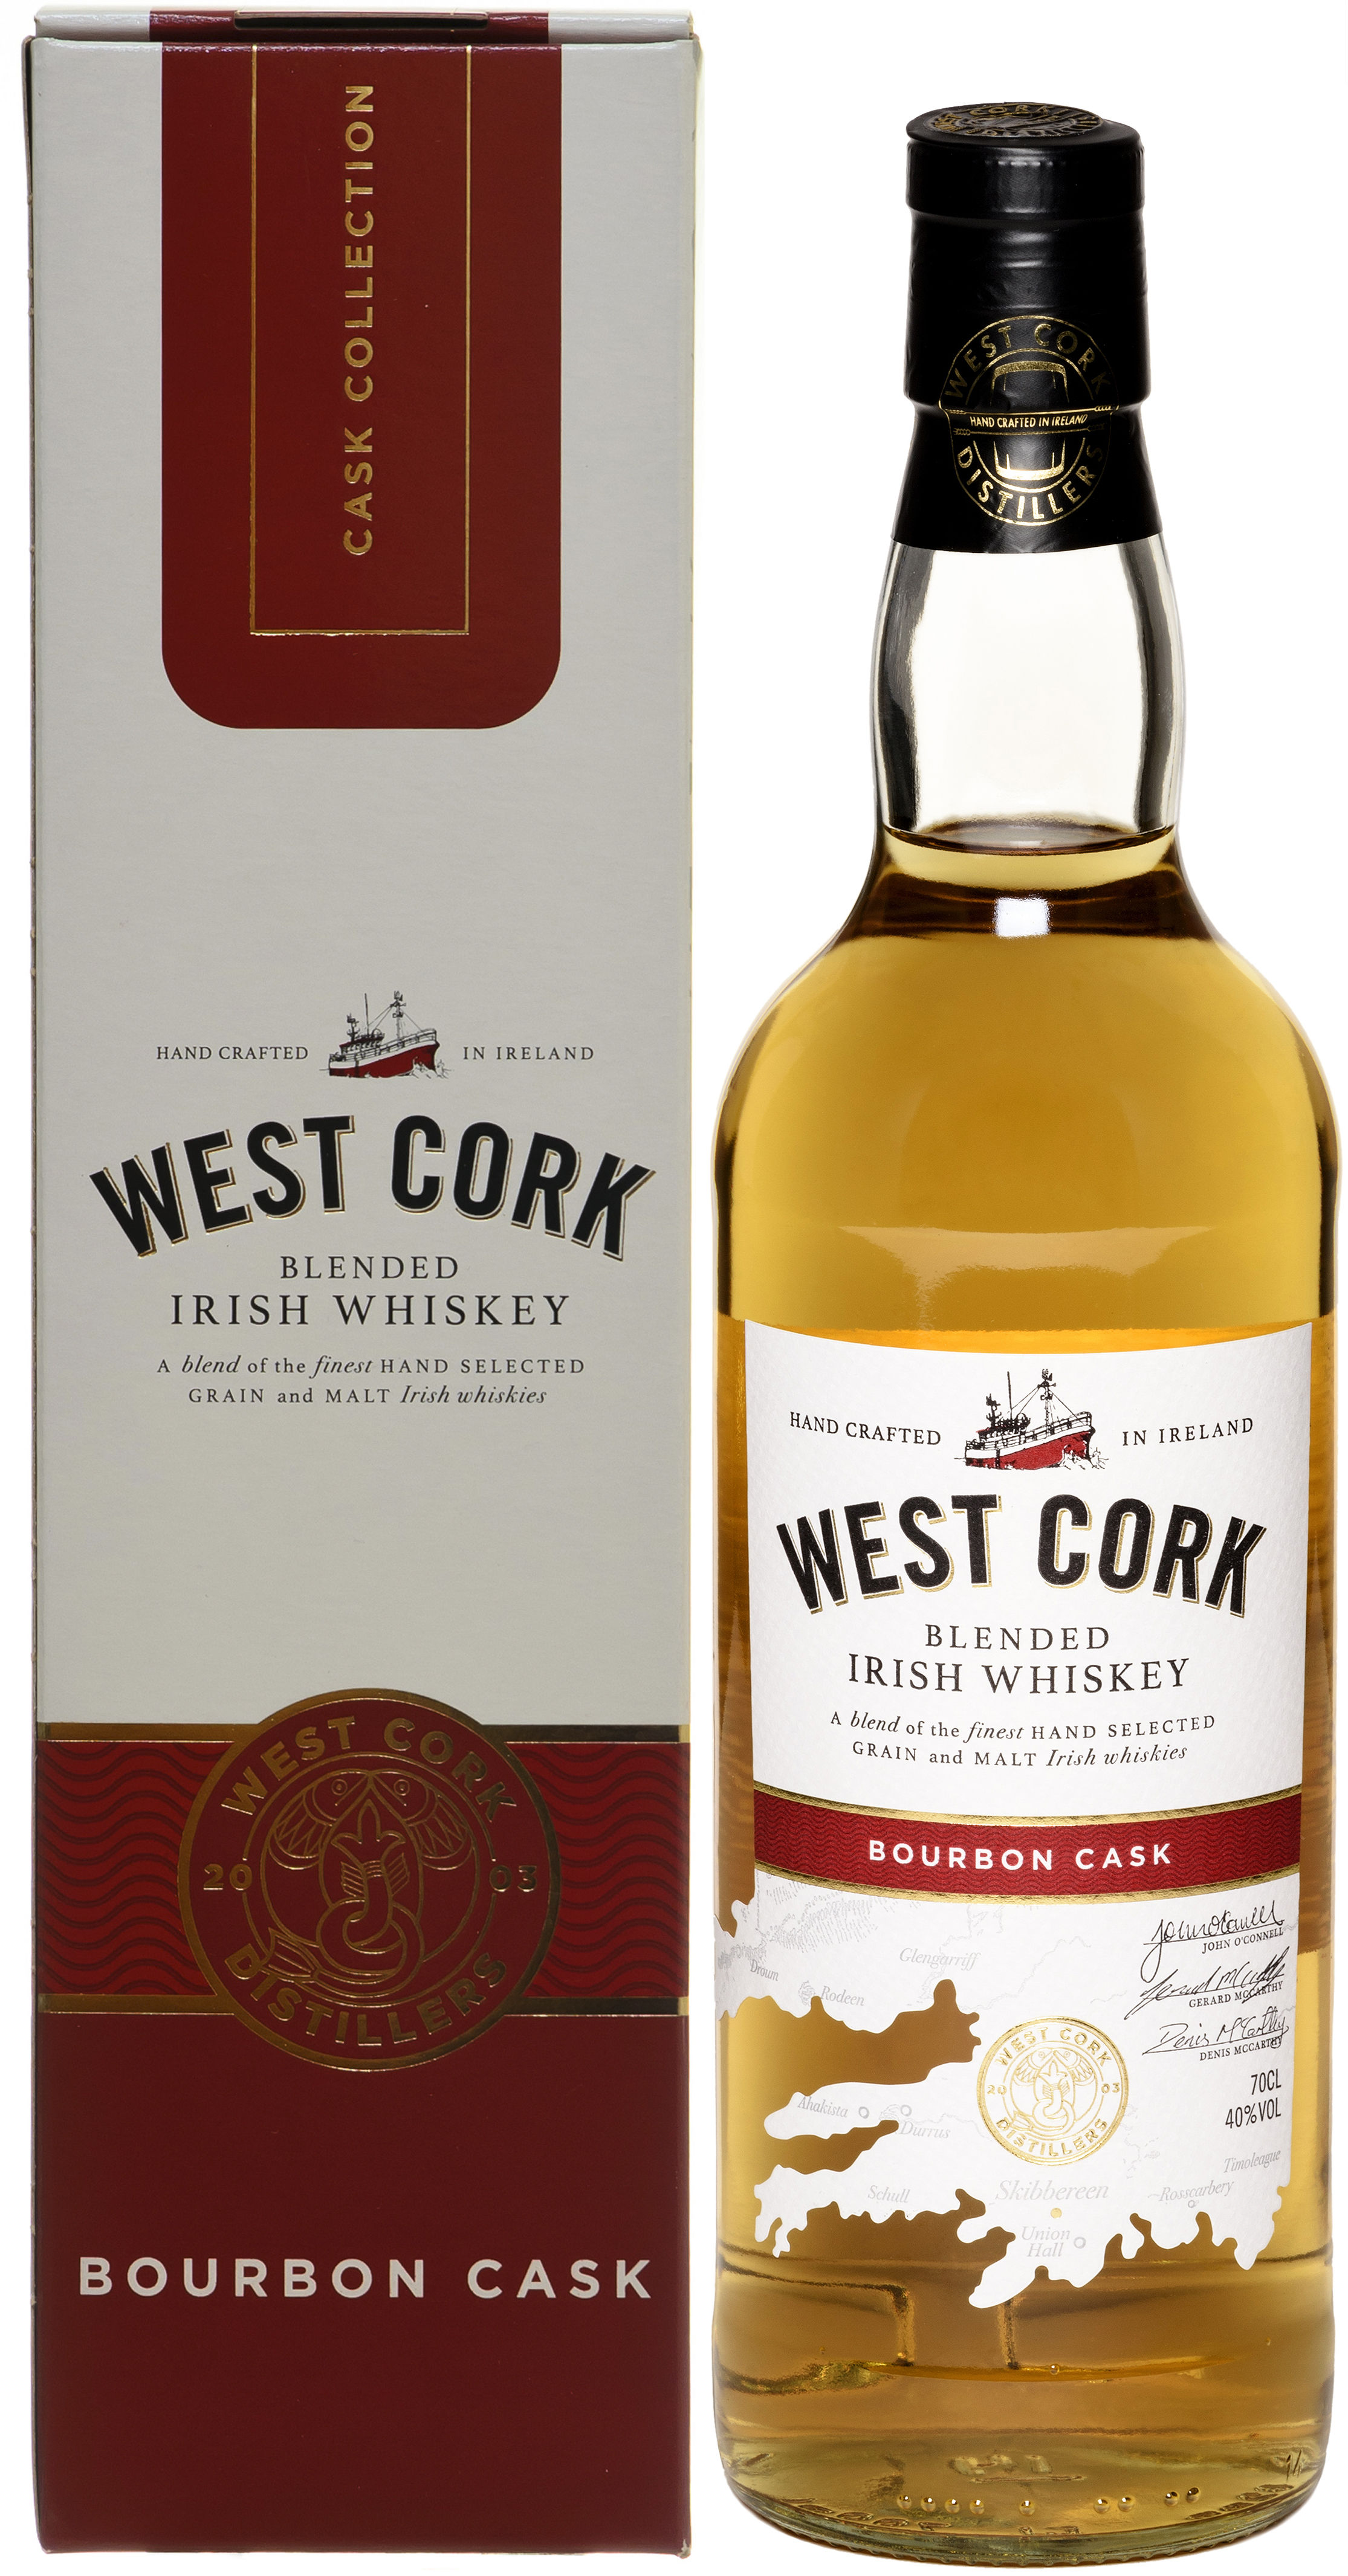 West Cork Bourbon Cask (Original)